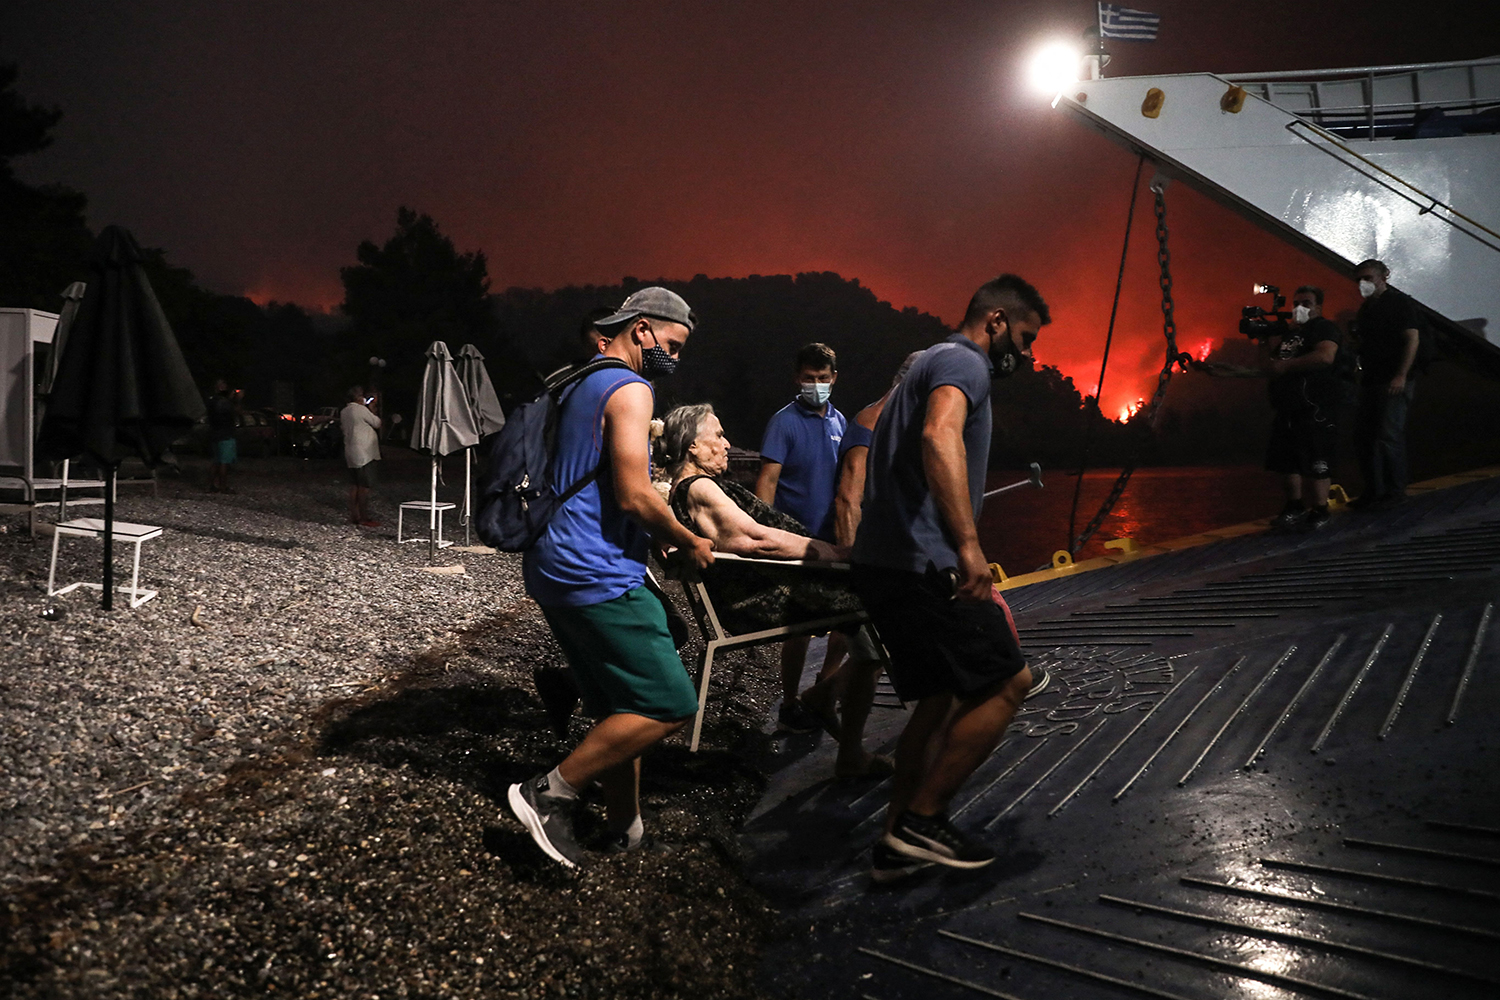 People board a ferry as a wildfire approaches in Greece.